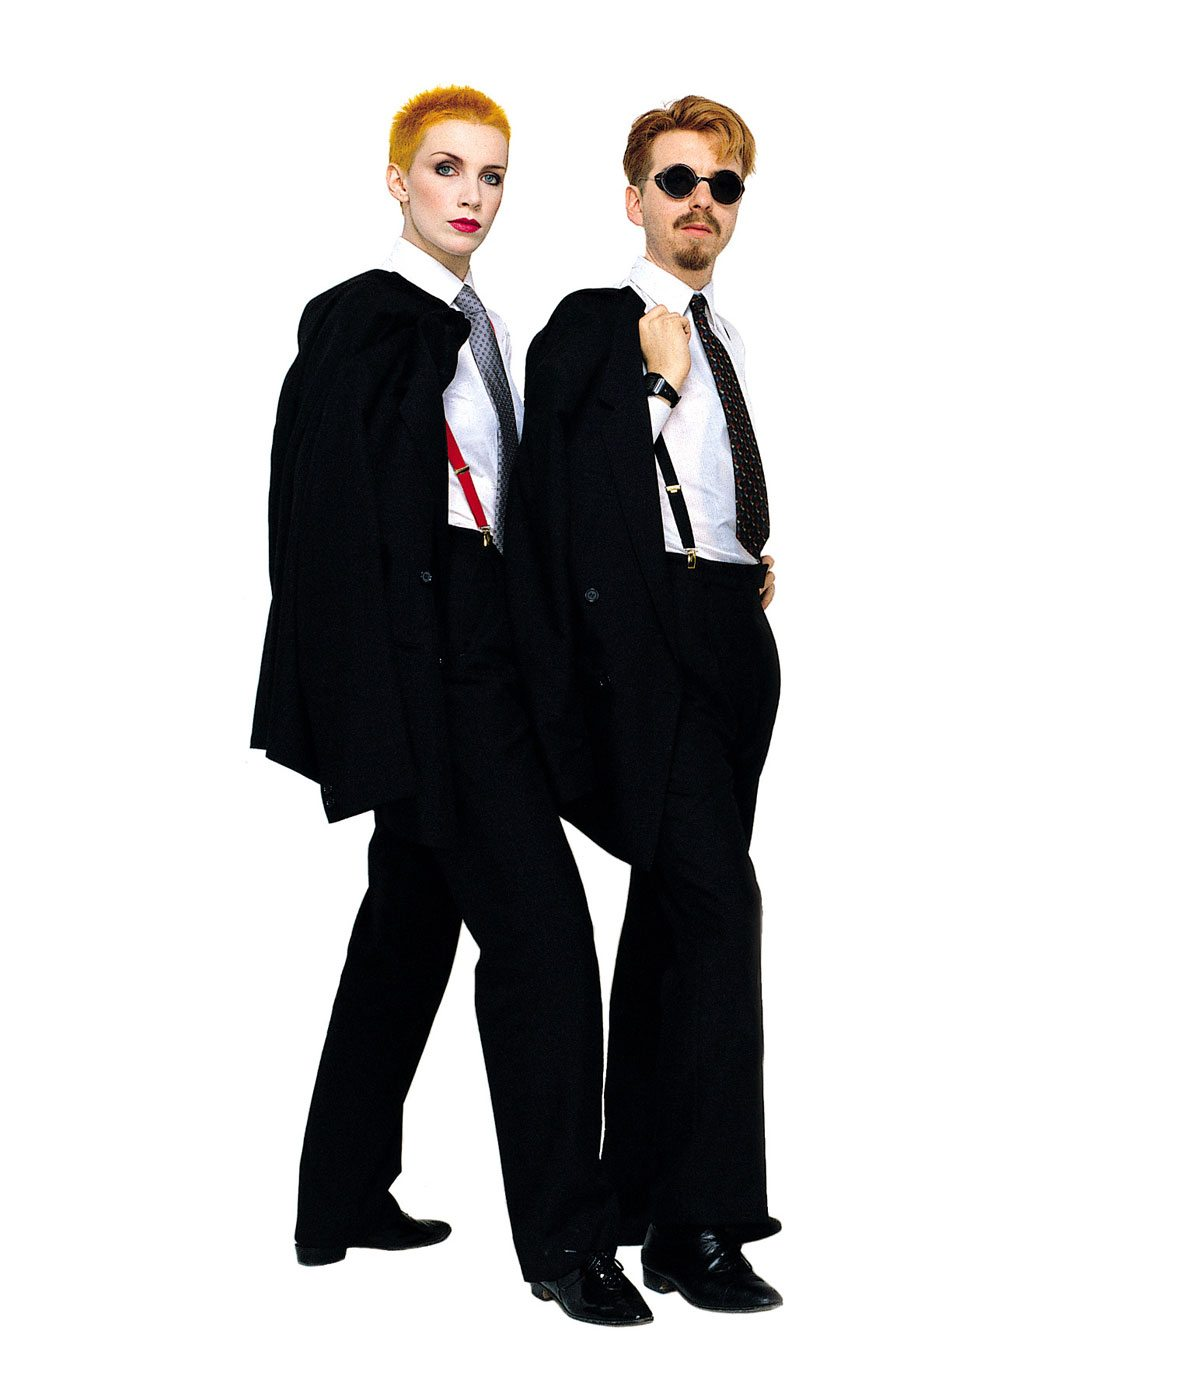 Photo Of The Week: Eurythmics – Dave And Annie In Matching Suits And Braces